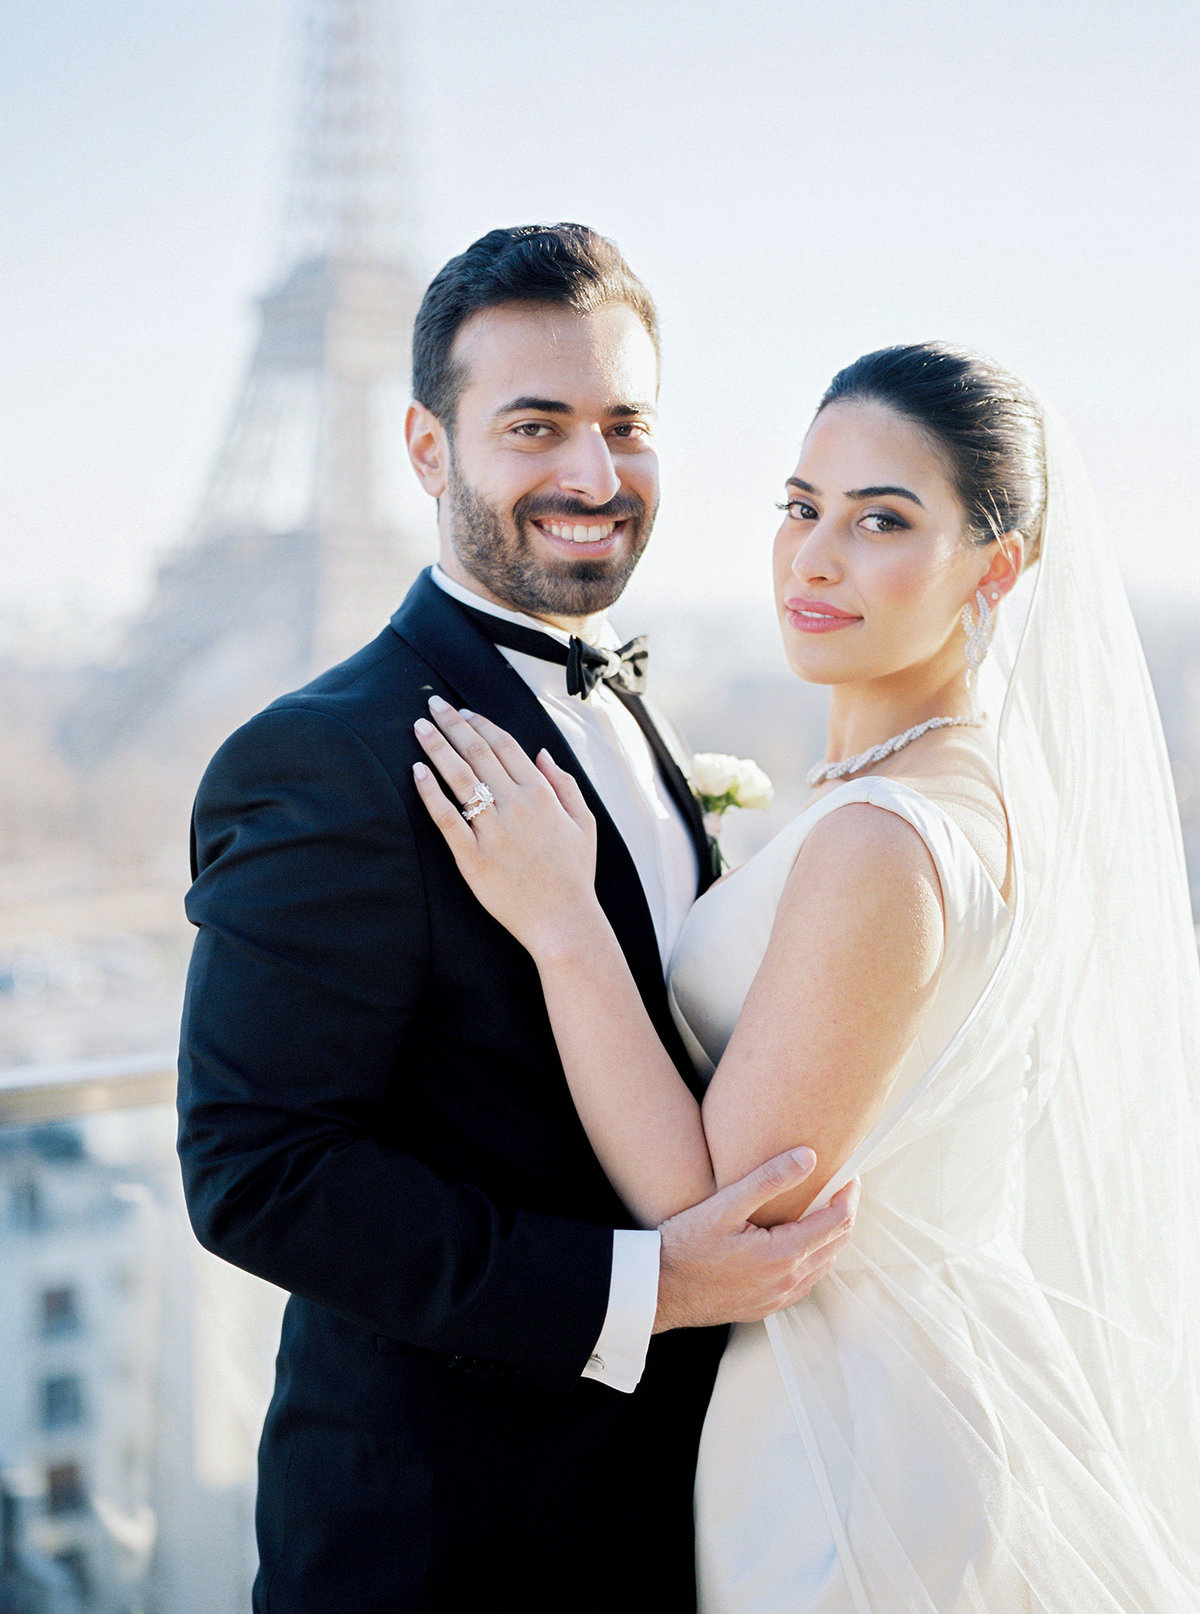 Paris_wedding_photographer_claire_Morris_112